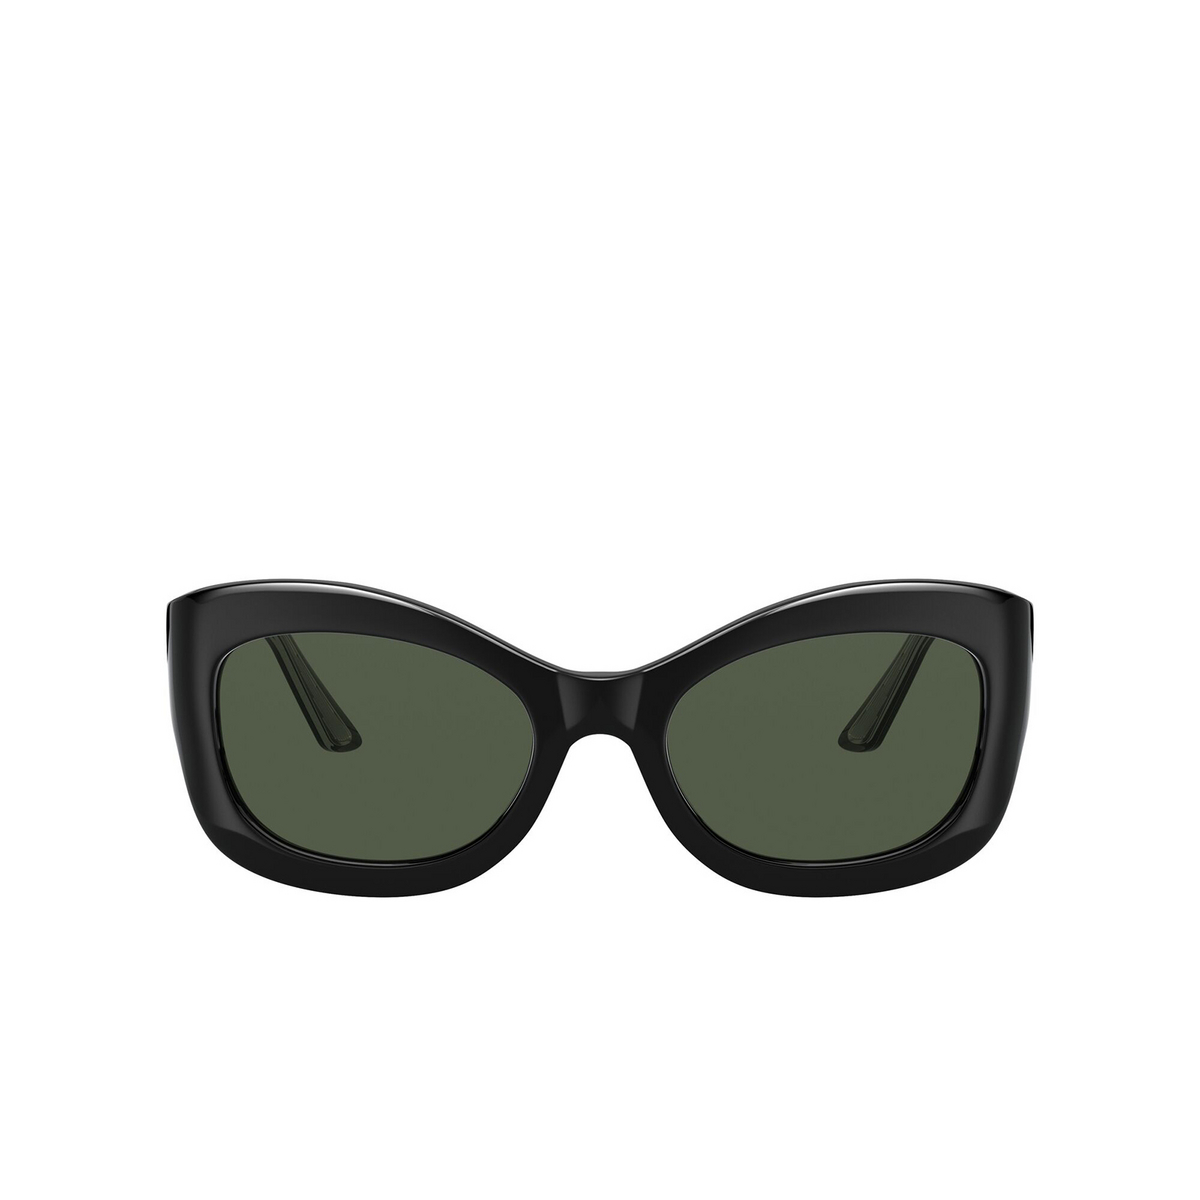 Oliver Peoples® Butterfly Sunglasses: Edina OV5441SU color Black 10059A - front view.